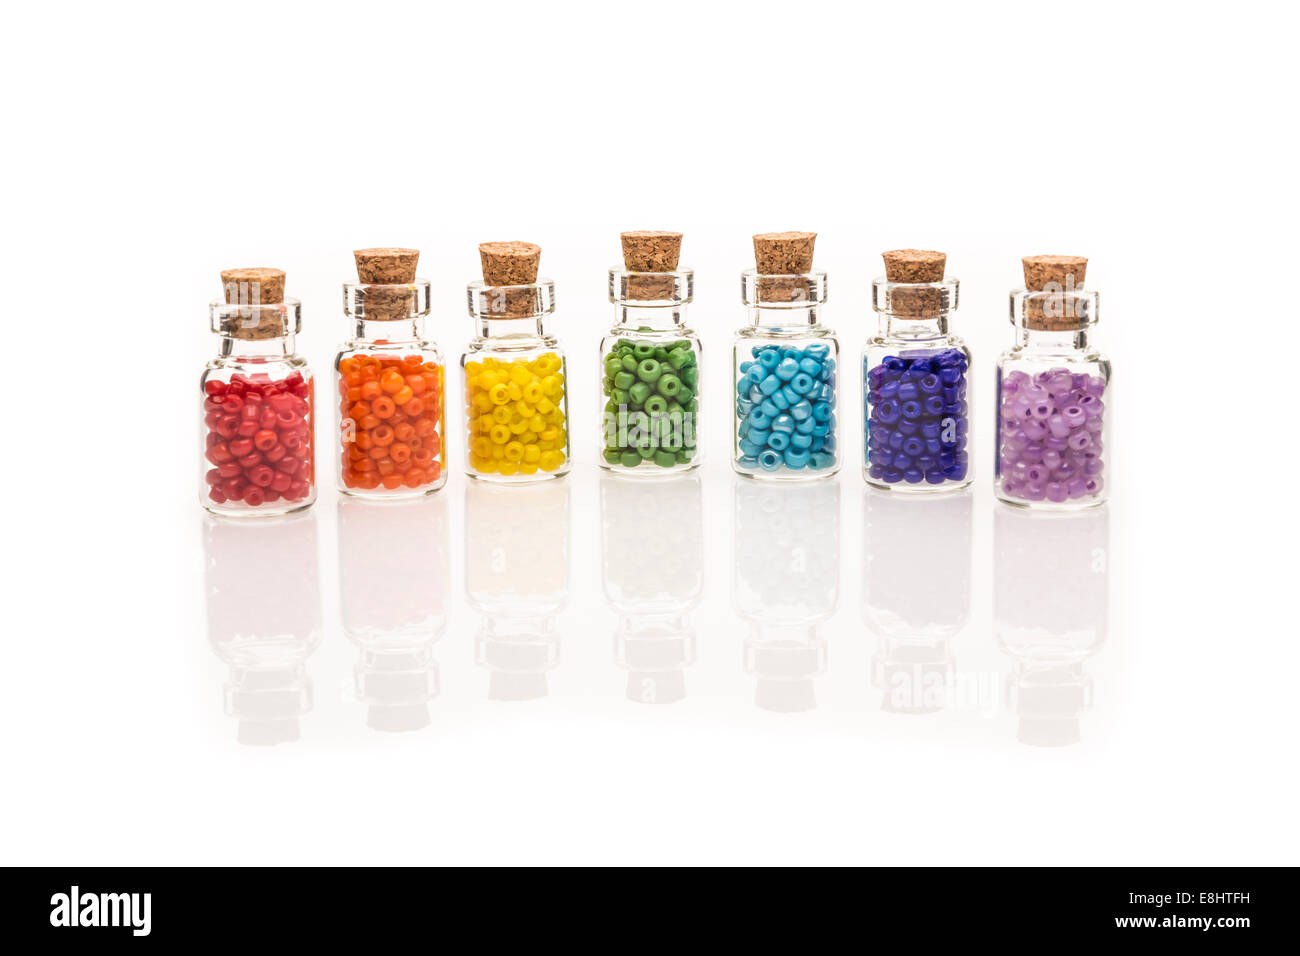 Tiny glass bottles with a cork stopper, filled with a rainbow colours of beads, on a white background Stock Photo